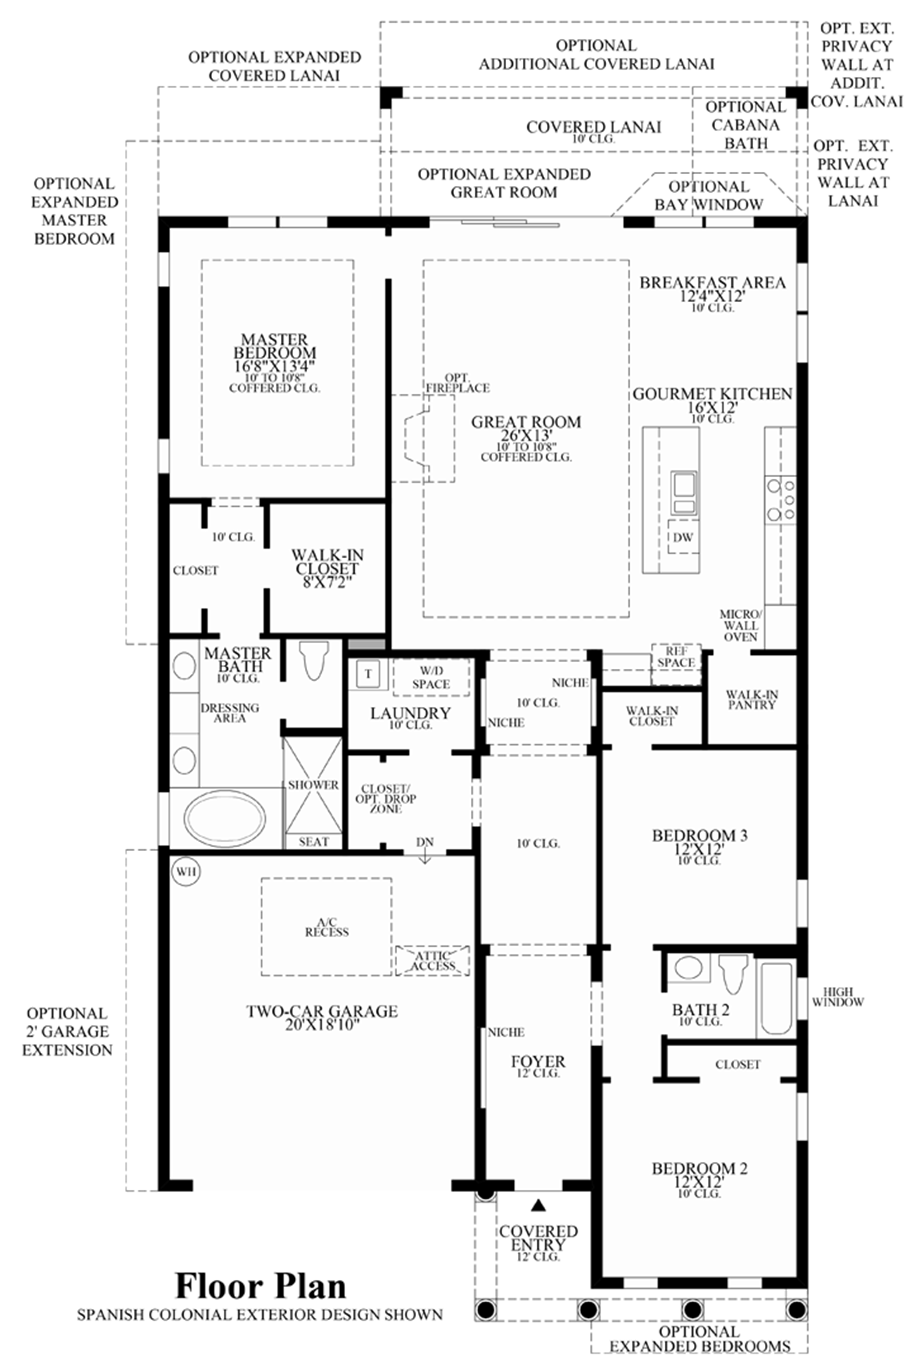 sabel-floorplan.png